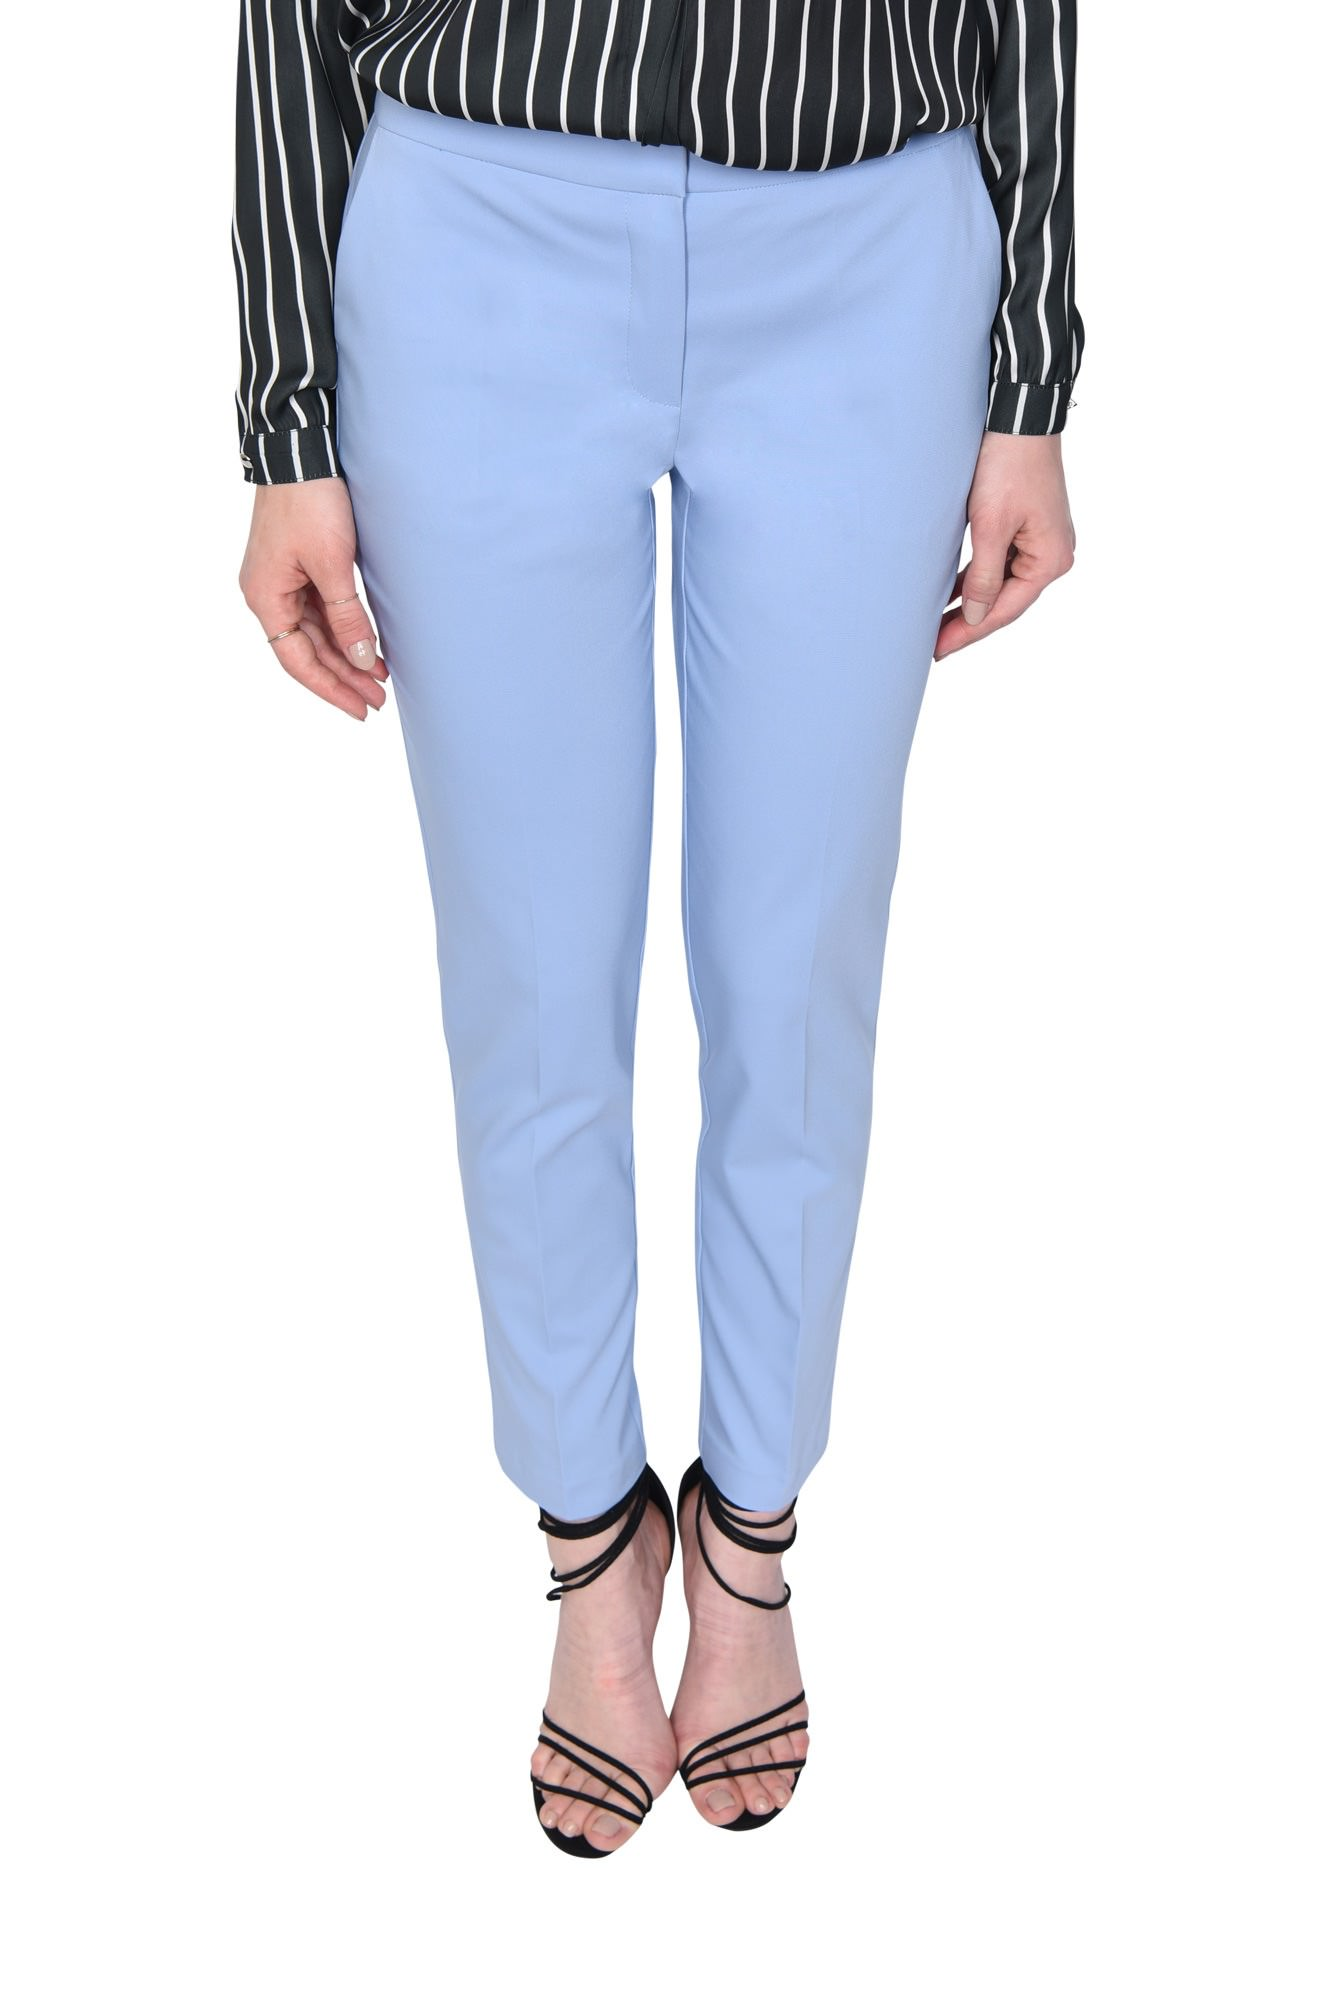 PANTALON OFFICE CONIC PT 144-BLEU